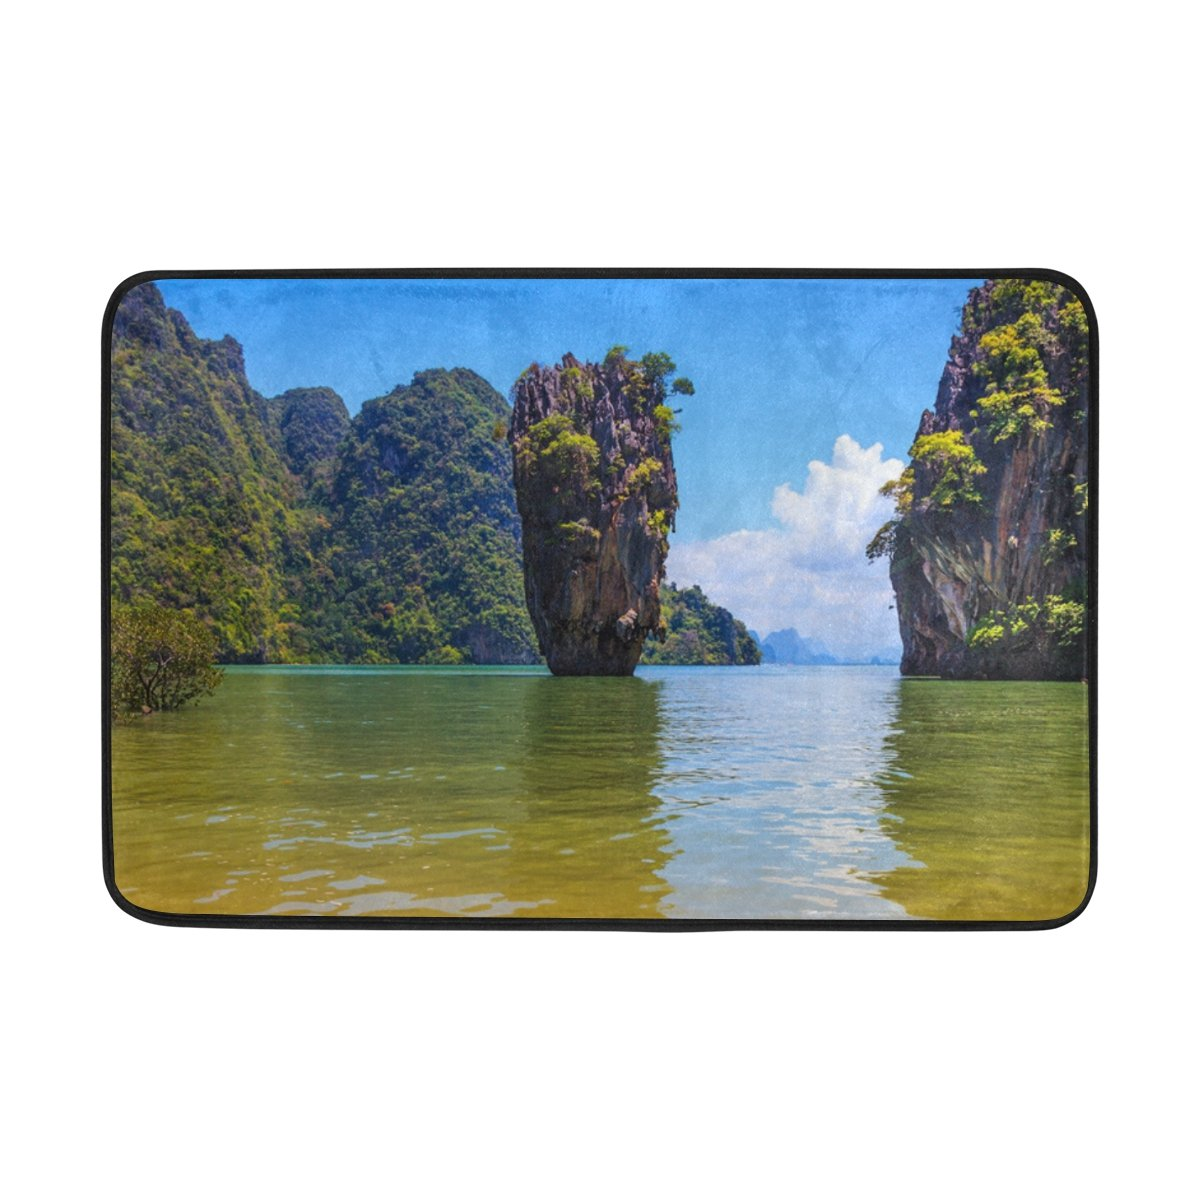 LEISISI Beautiful Thai Coast Fashion Design Indoor Outdoor Doormat 23.6(L) X15.7(W) inch Non-Slip doormat Home Decor by LEISISI